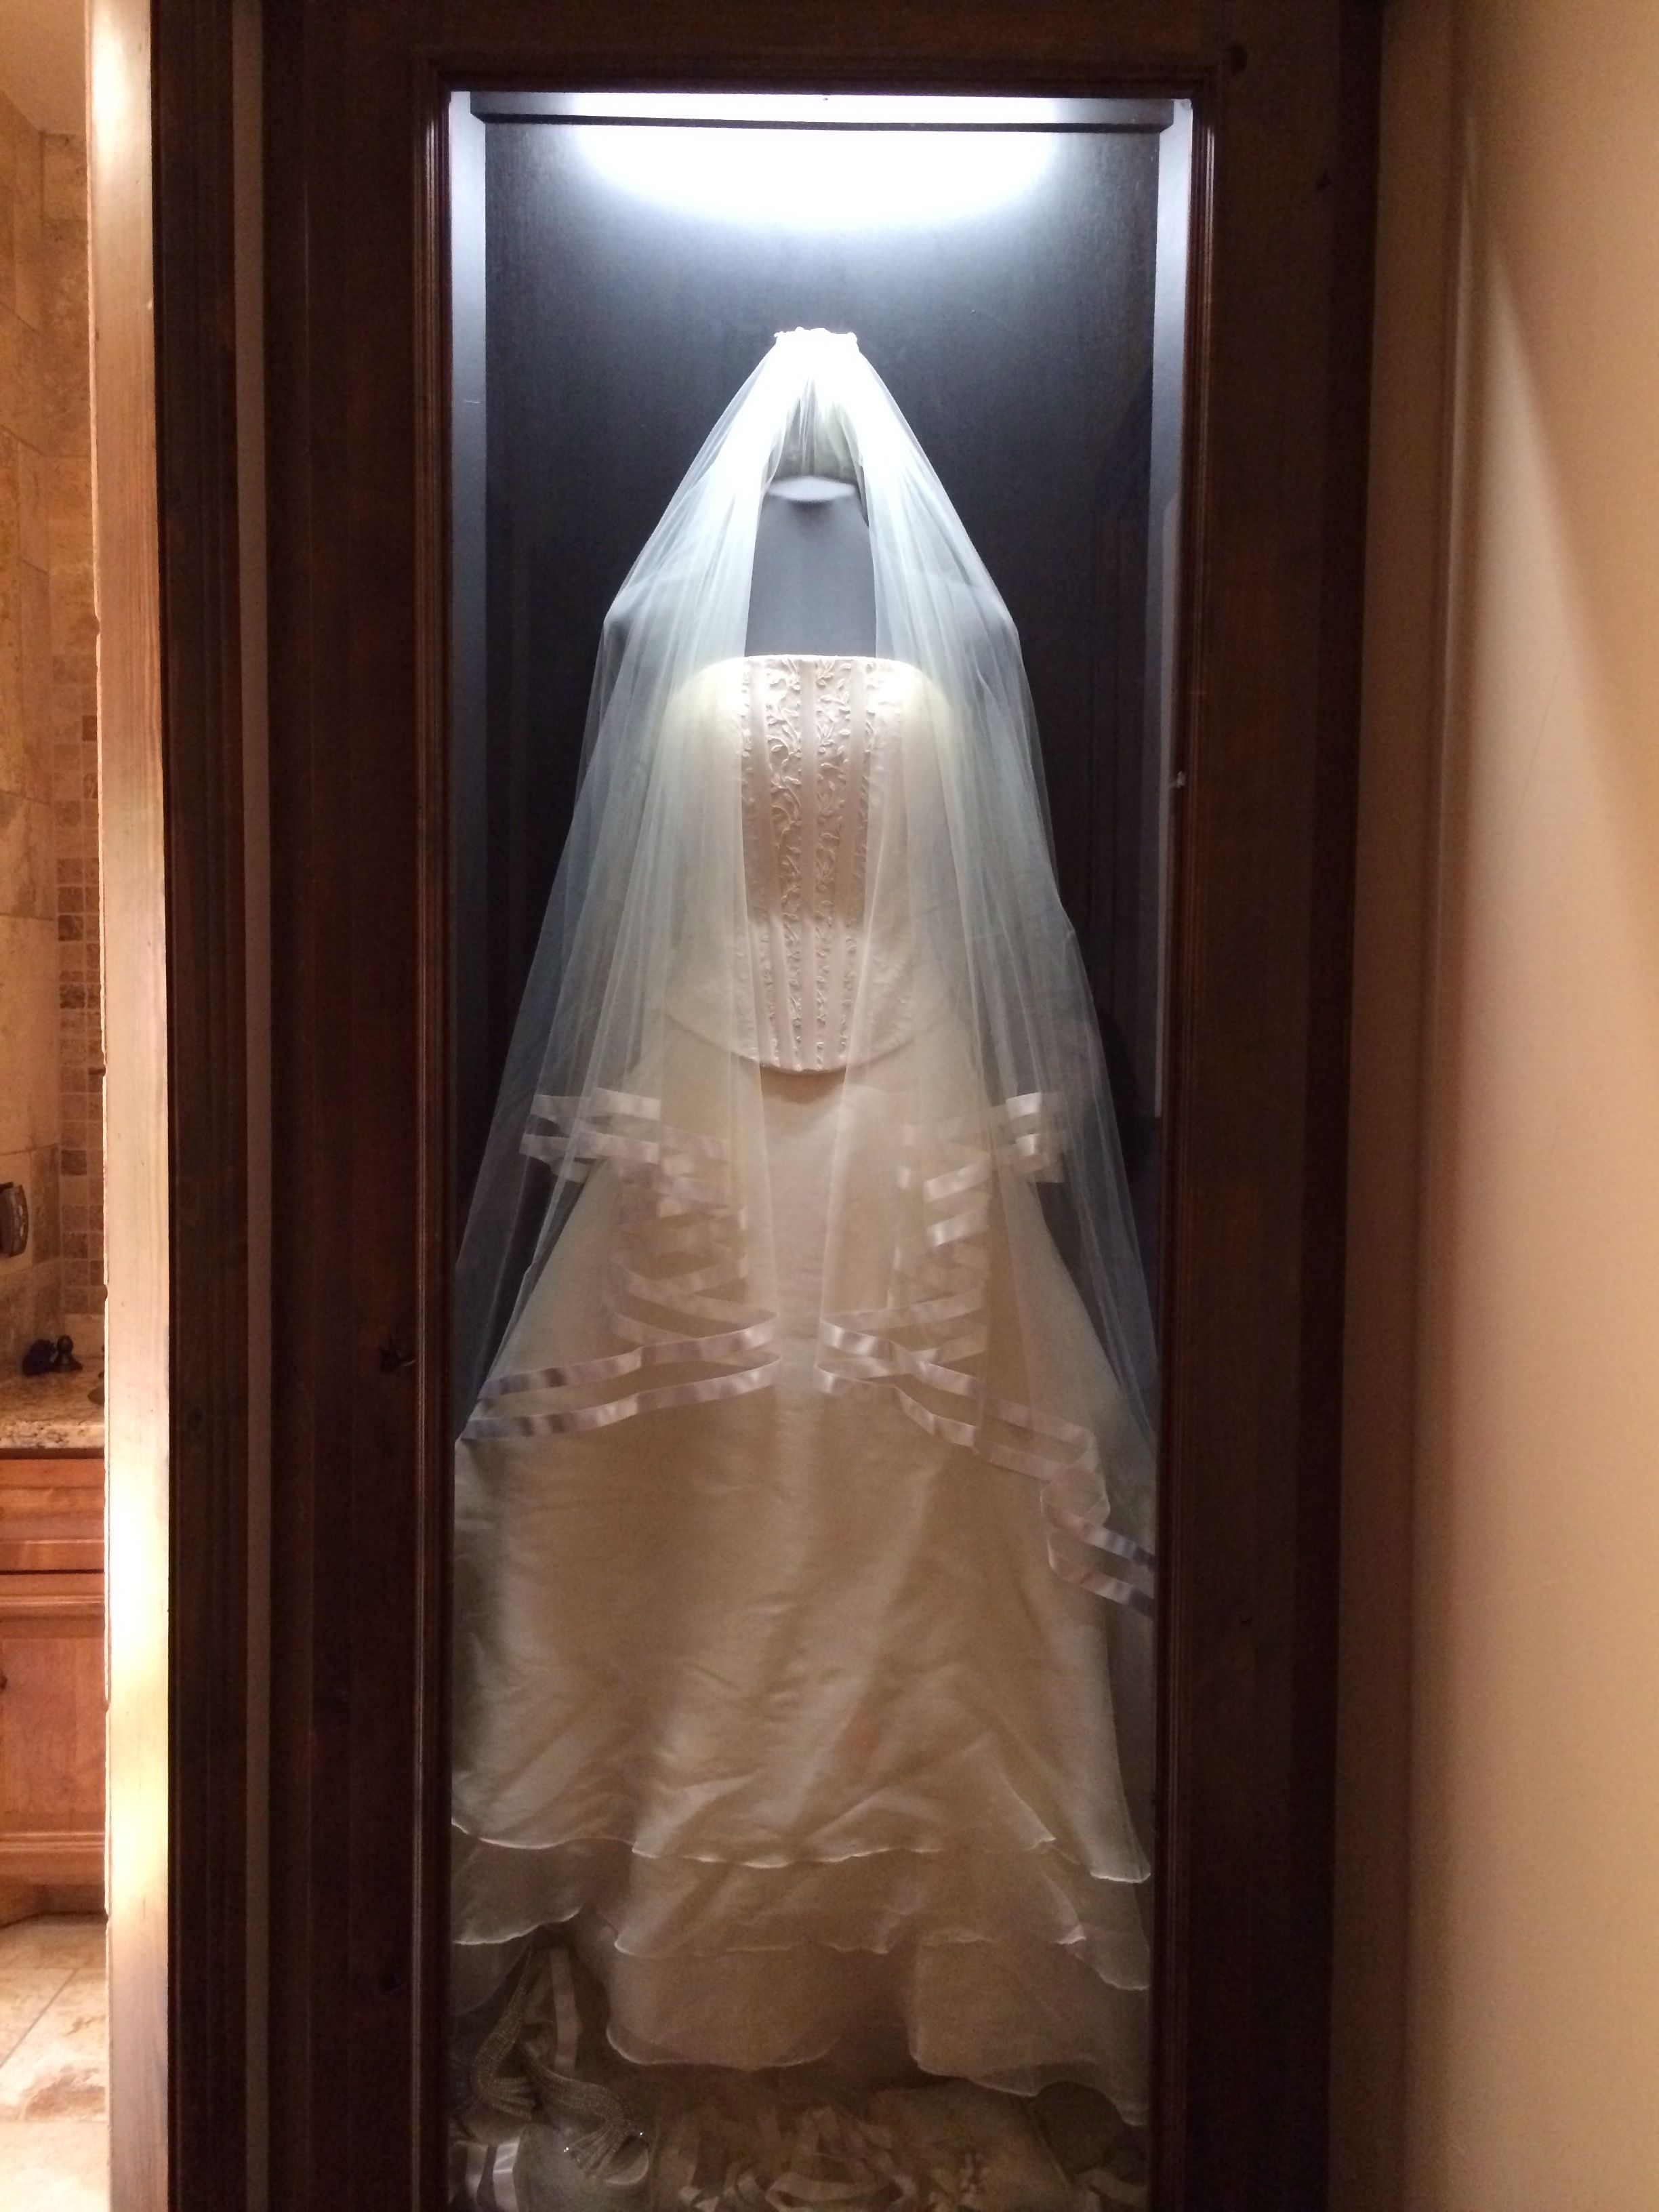 My Clients Wedding Dress A Built In Shadow Box With Her Gown Hung The Hallway That Connects Bathroom To Huge Walk Closet